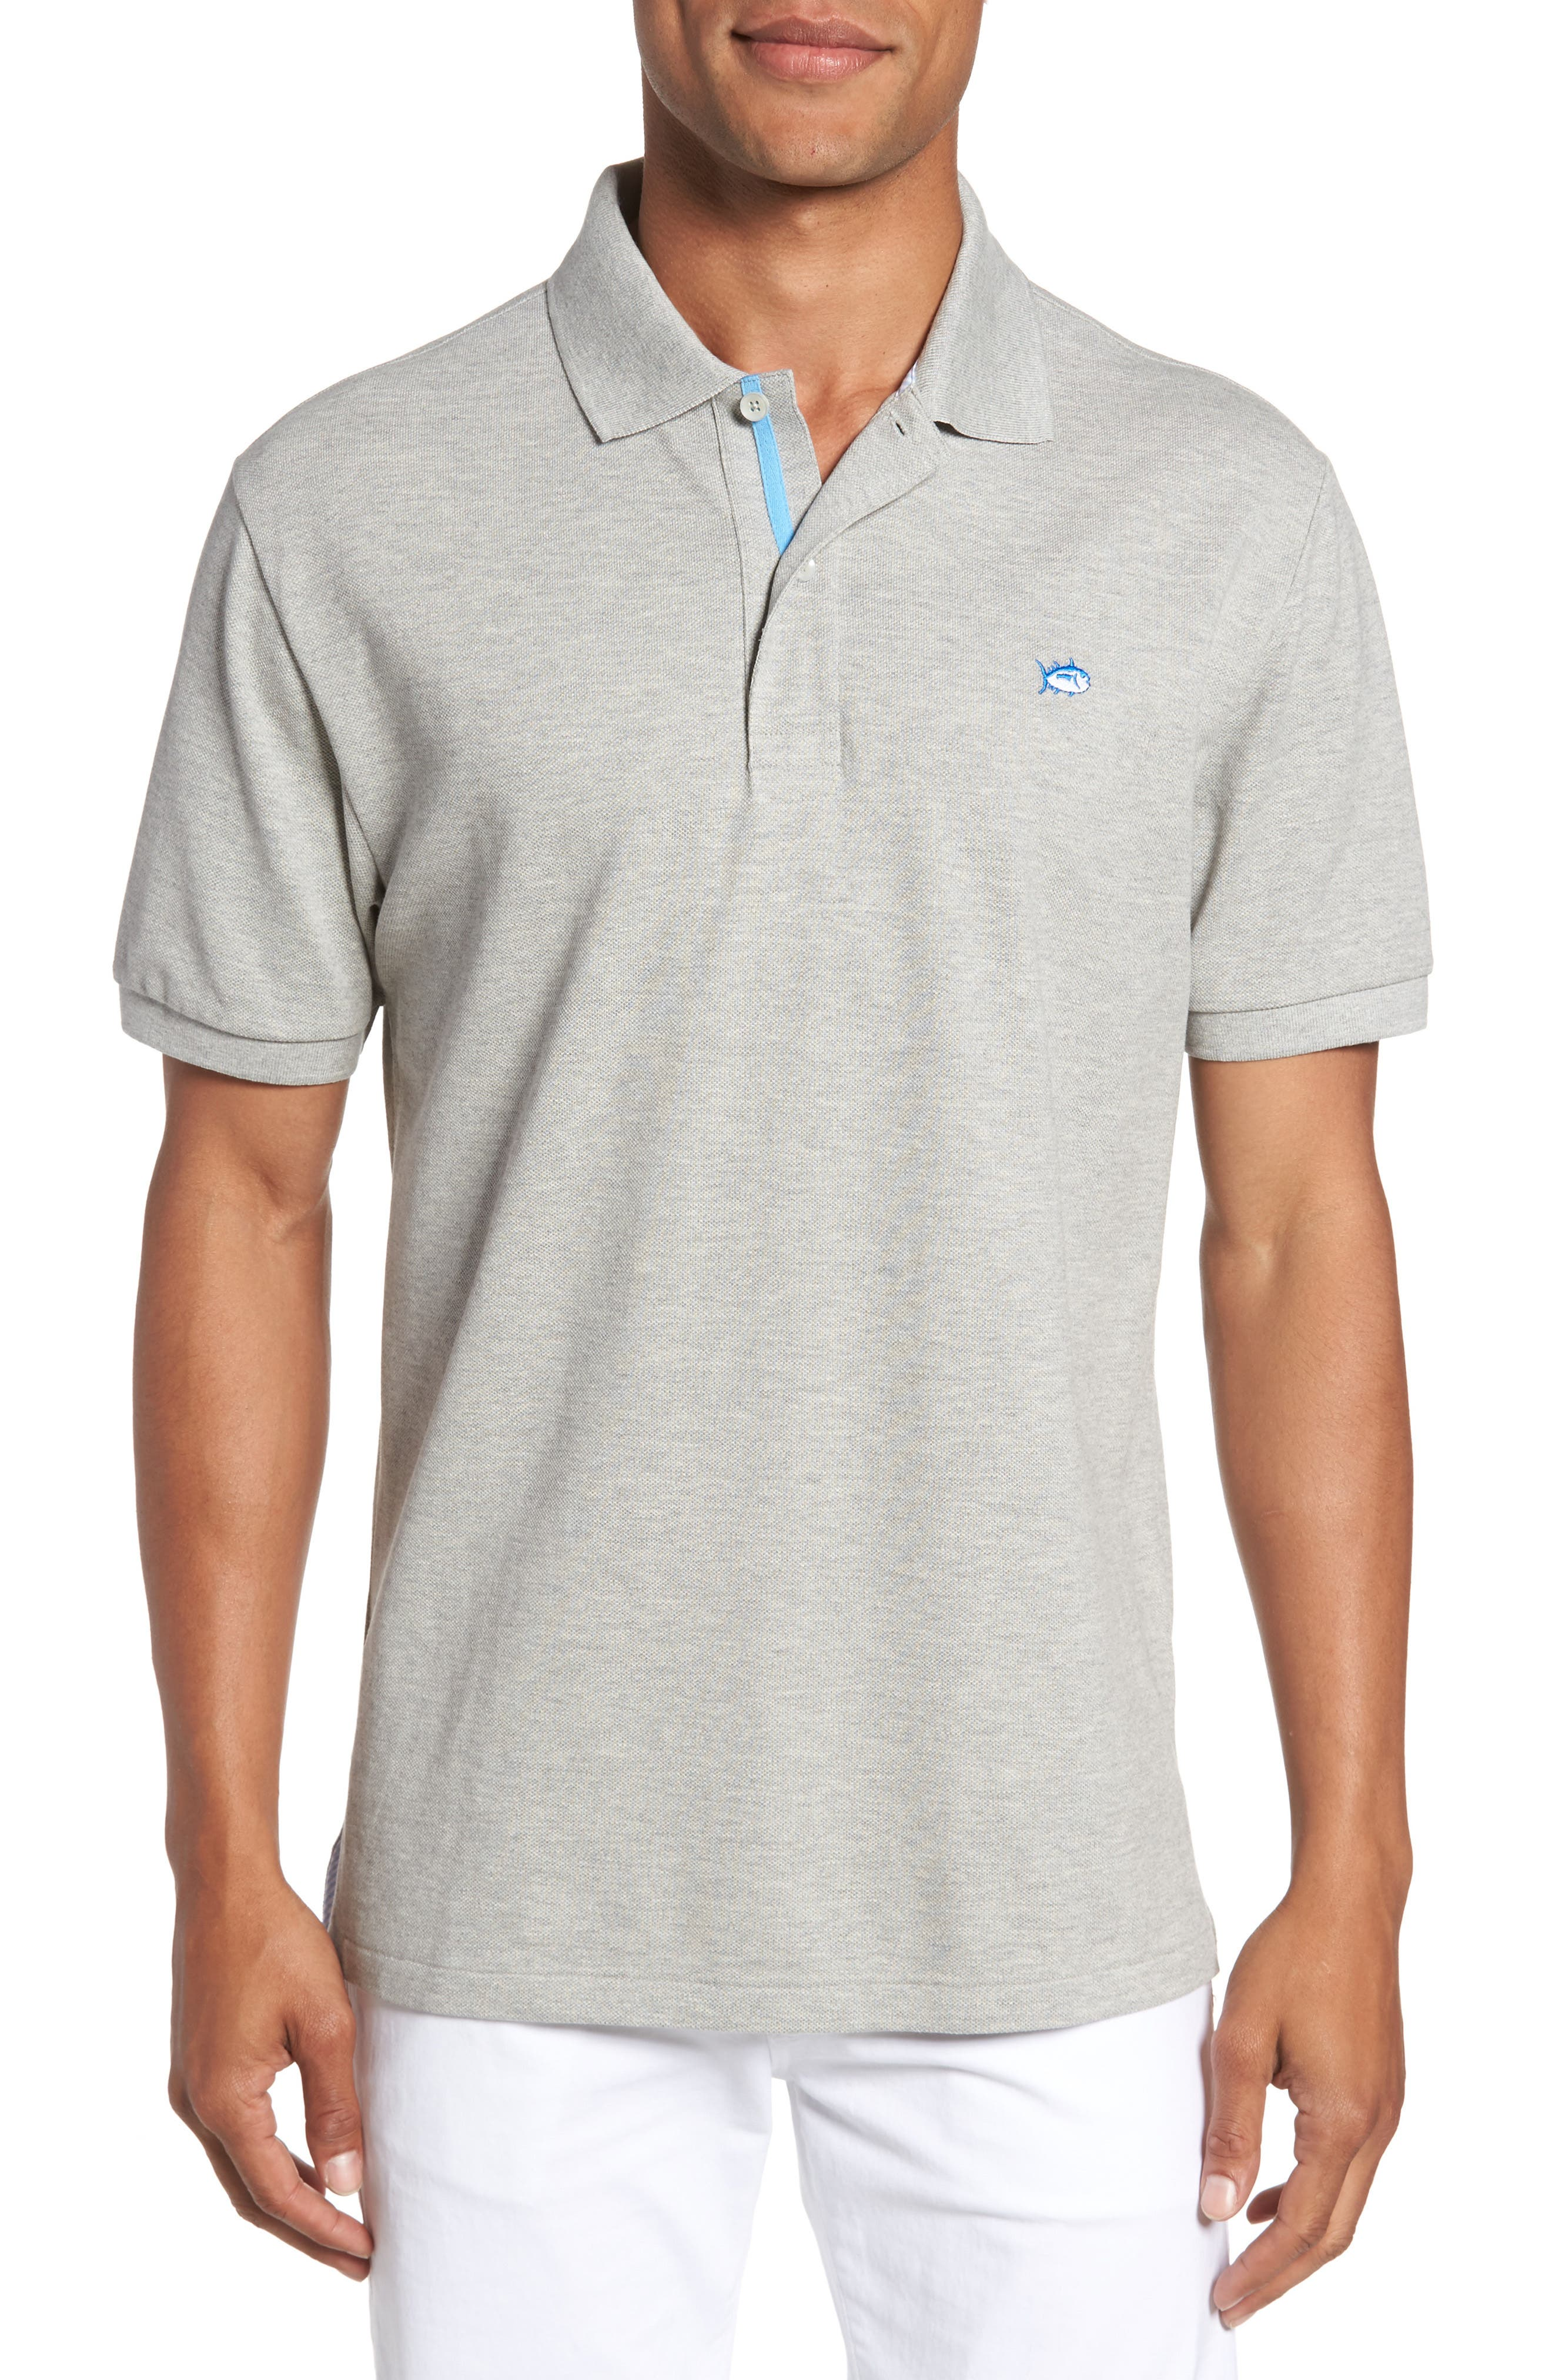 Southern Tide Classic Fit Heathered Polo